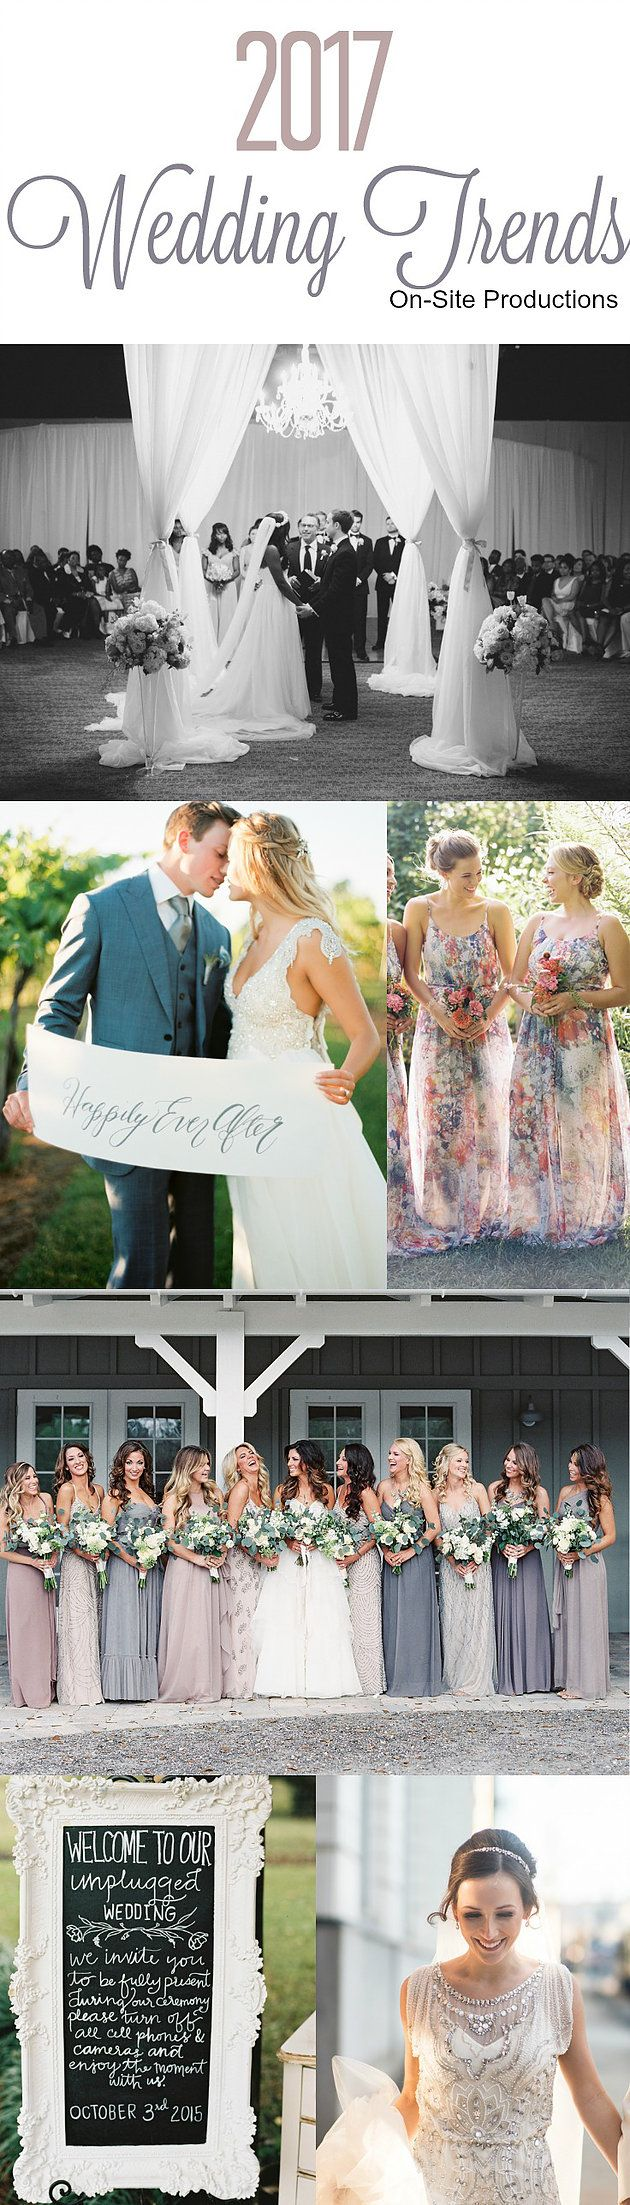 It may still be 2016, but if you're getting married next year, you alreadyhave 2017 on the mind already!I love the trends for 2017 weddings!